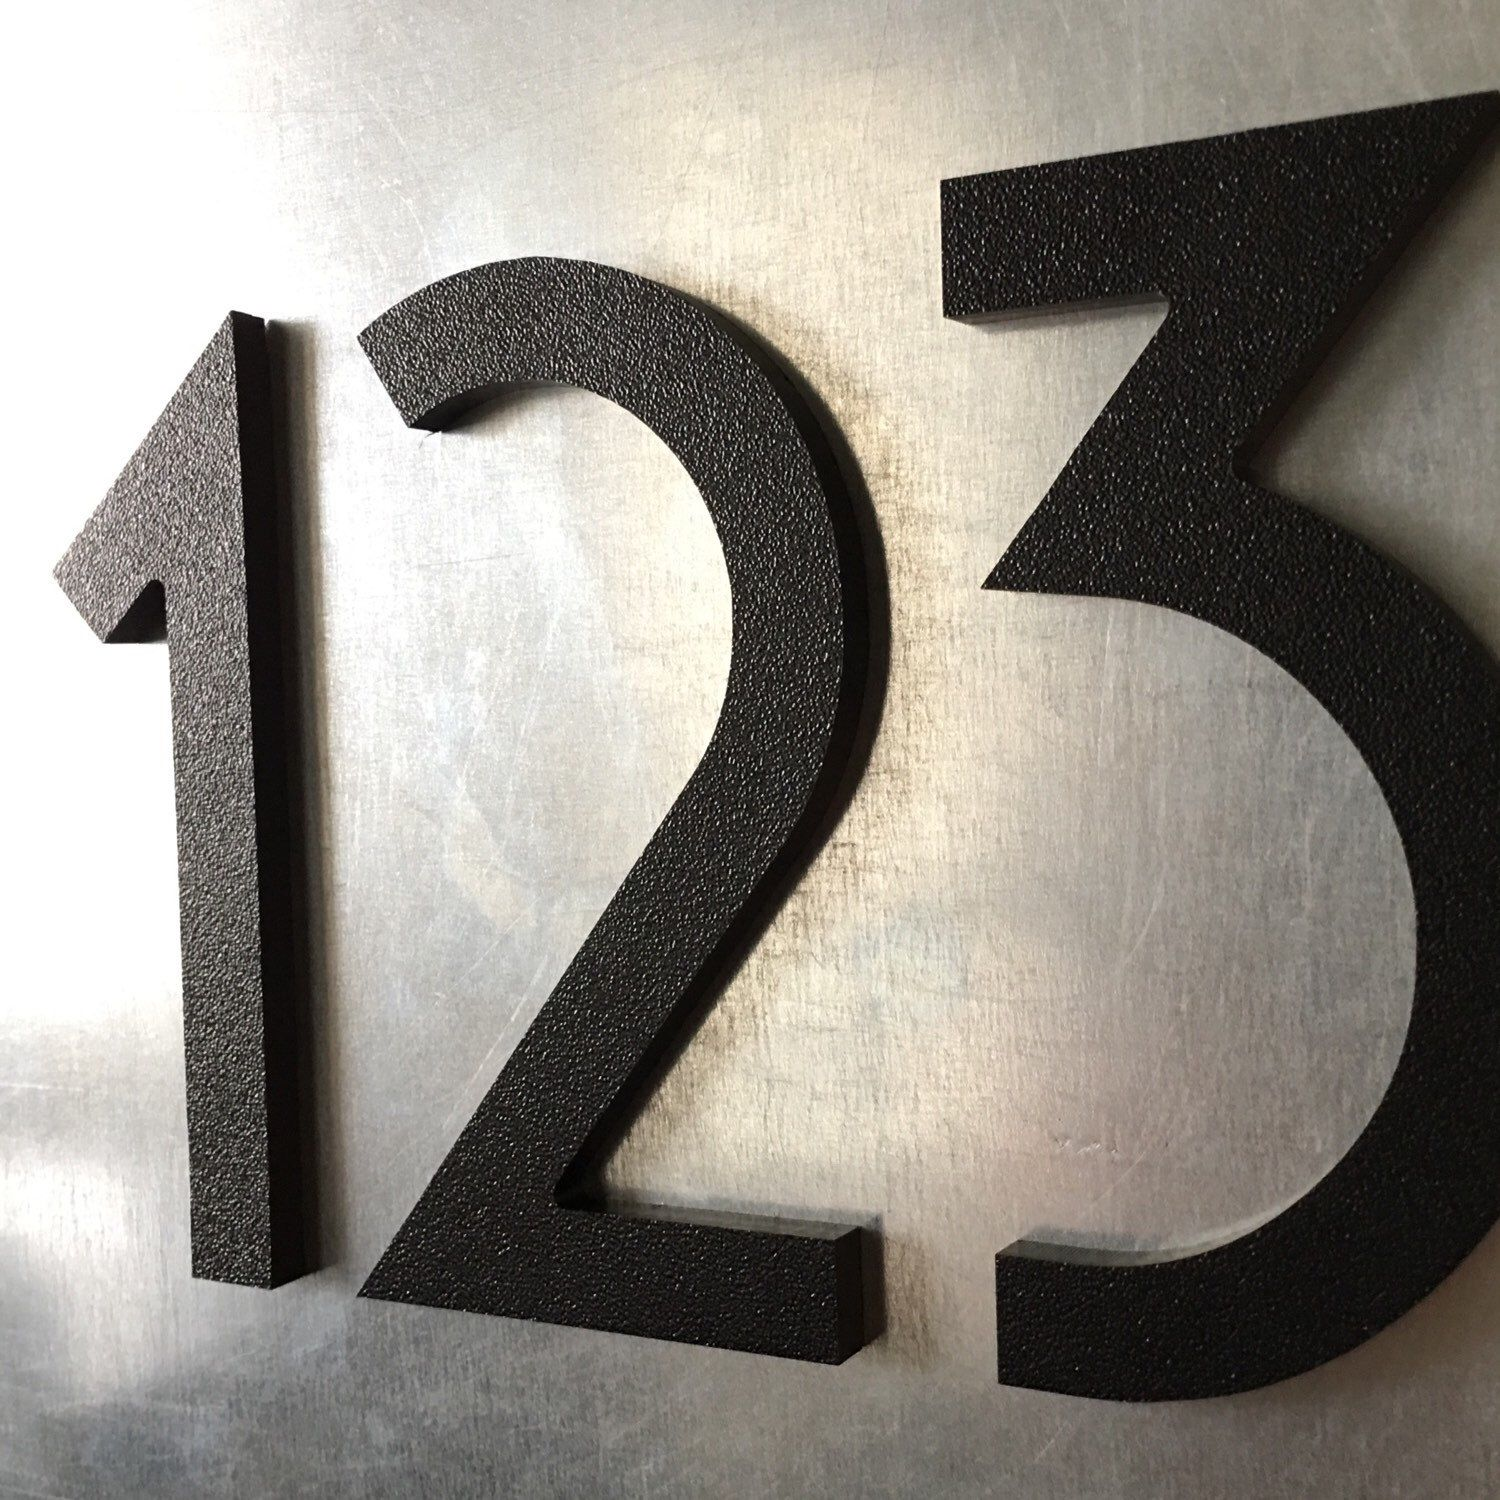 We Now Offer Magnetic Art Deco House Numbers In 4 Inch 5 Inch And 6 Sizes Check Them Out Perfect For Magnetic Doors Mailbox Art Deco Home Art Deco Numbers